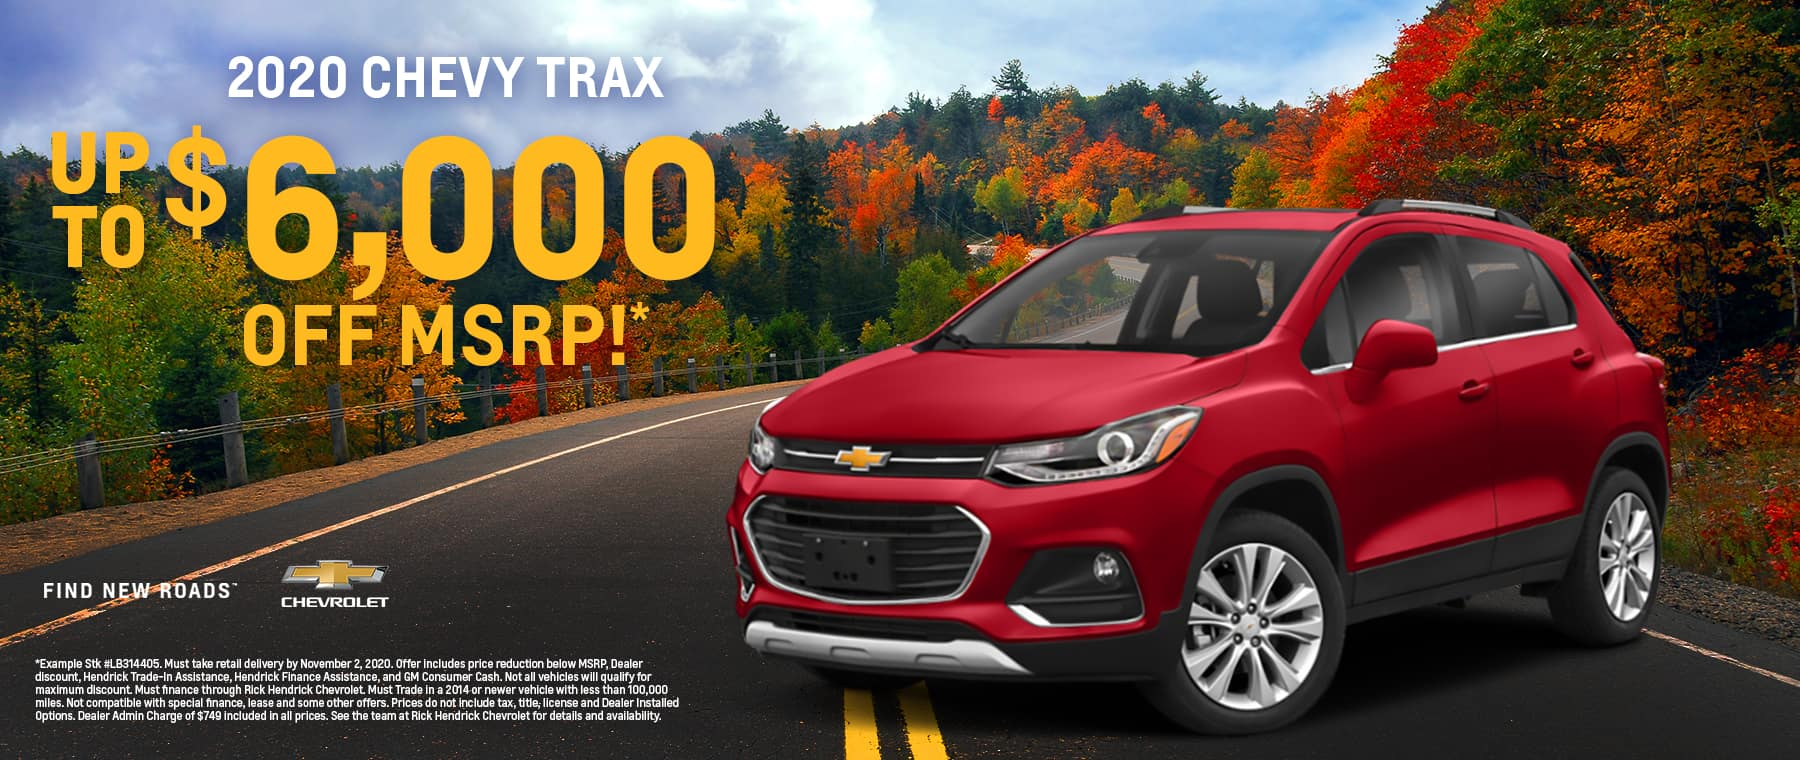 RH-Chevy-Duluth–Oct20_TR_New-Vehicle-Specials-TRAX-1800×760